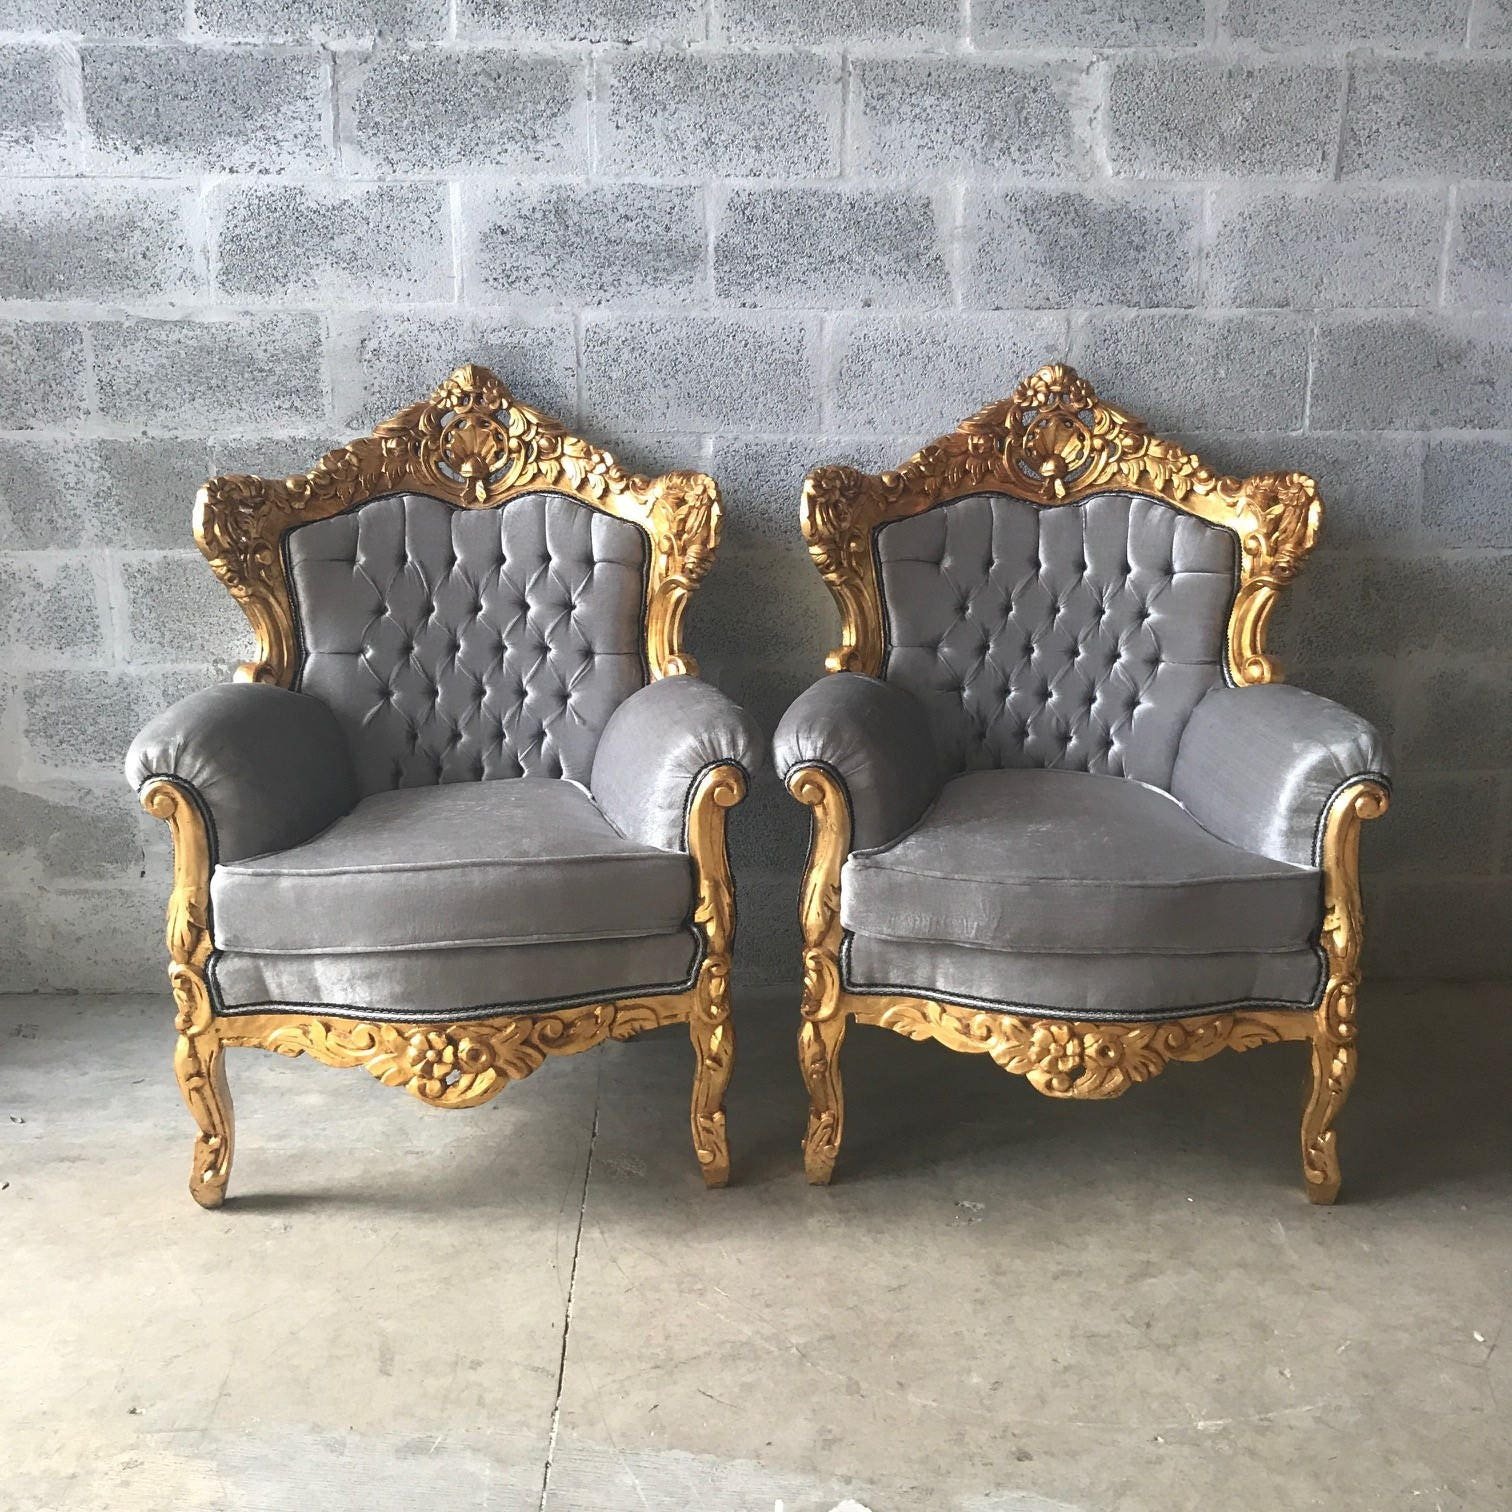 Ordinaire Rococo Throne Chair Antique Furniture Silver Gray Velvet Tufted Chair *3  Piece Set Avail* Gold Leaf French Chair Louis XVI French Furniture